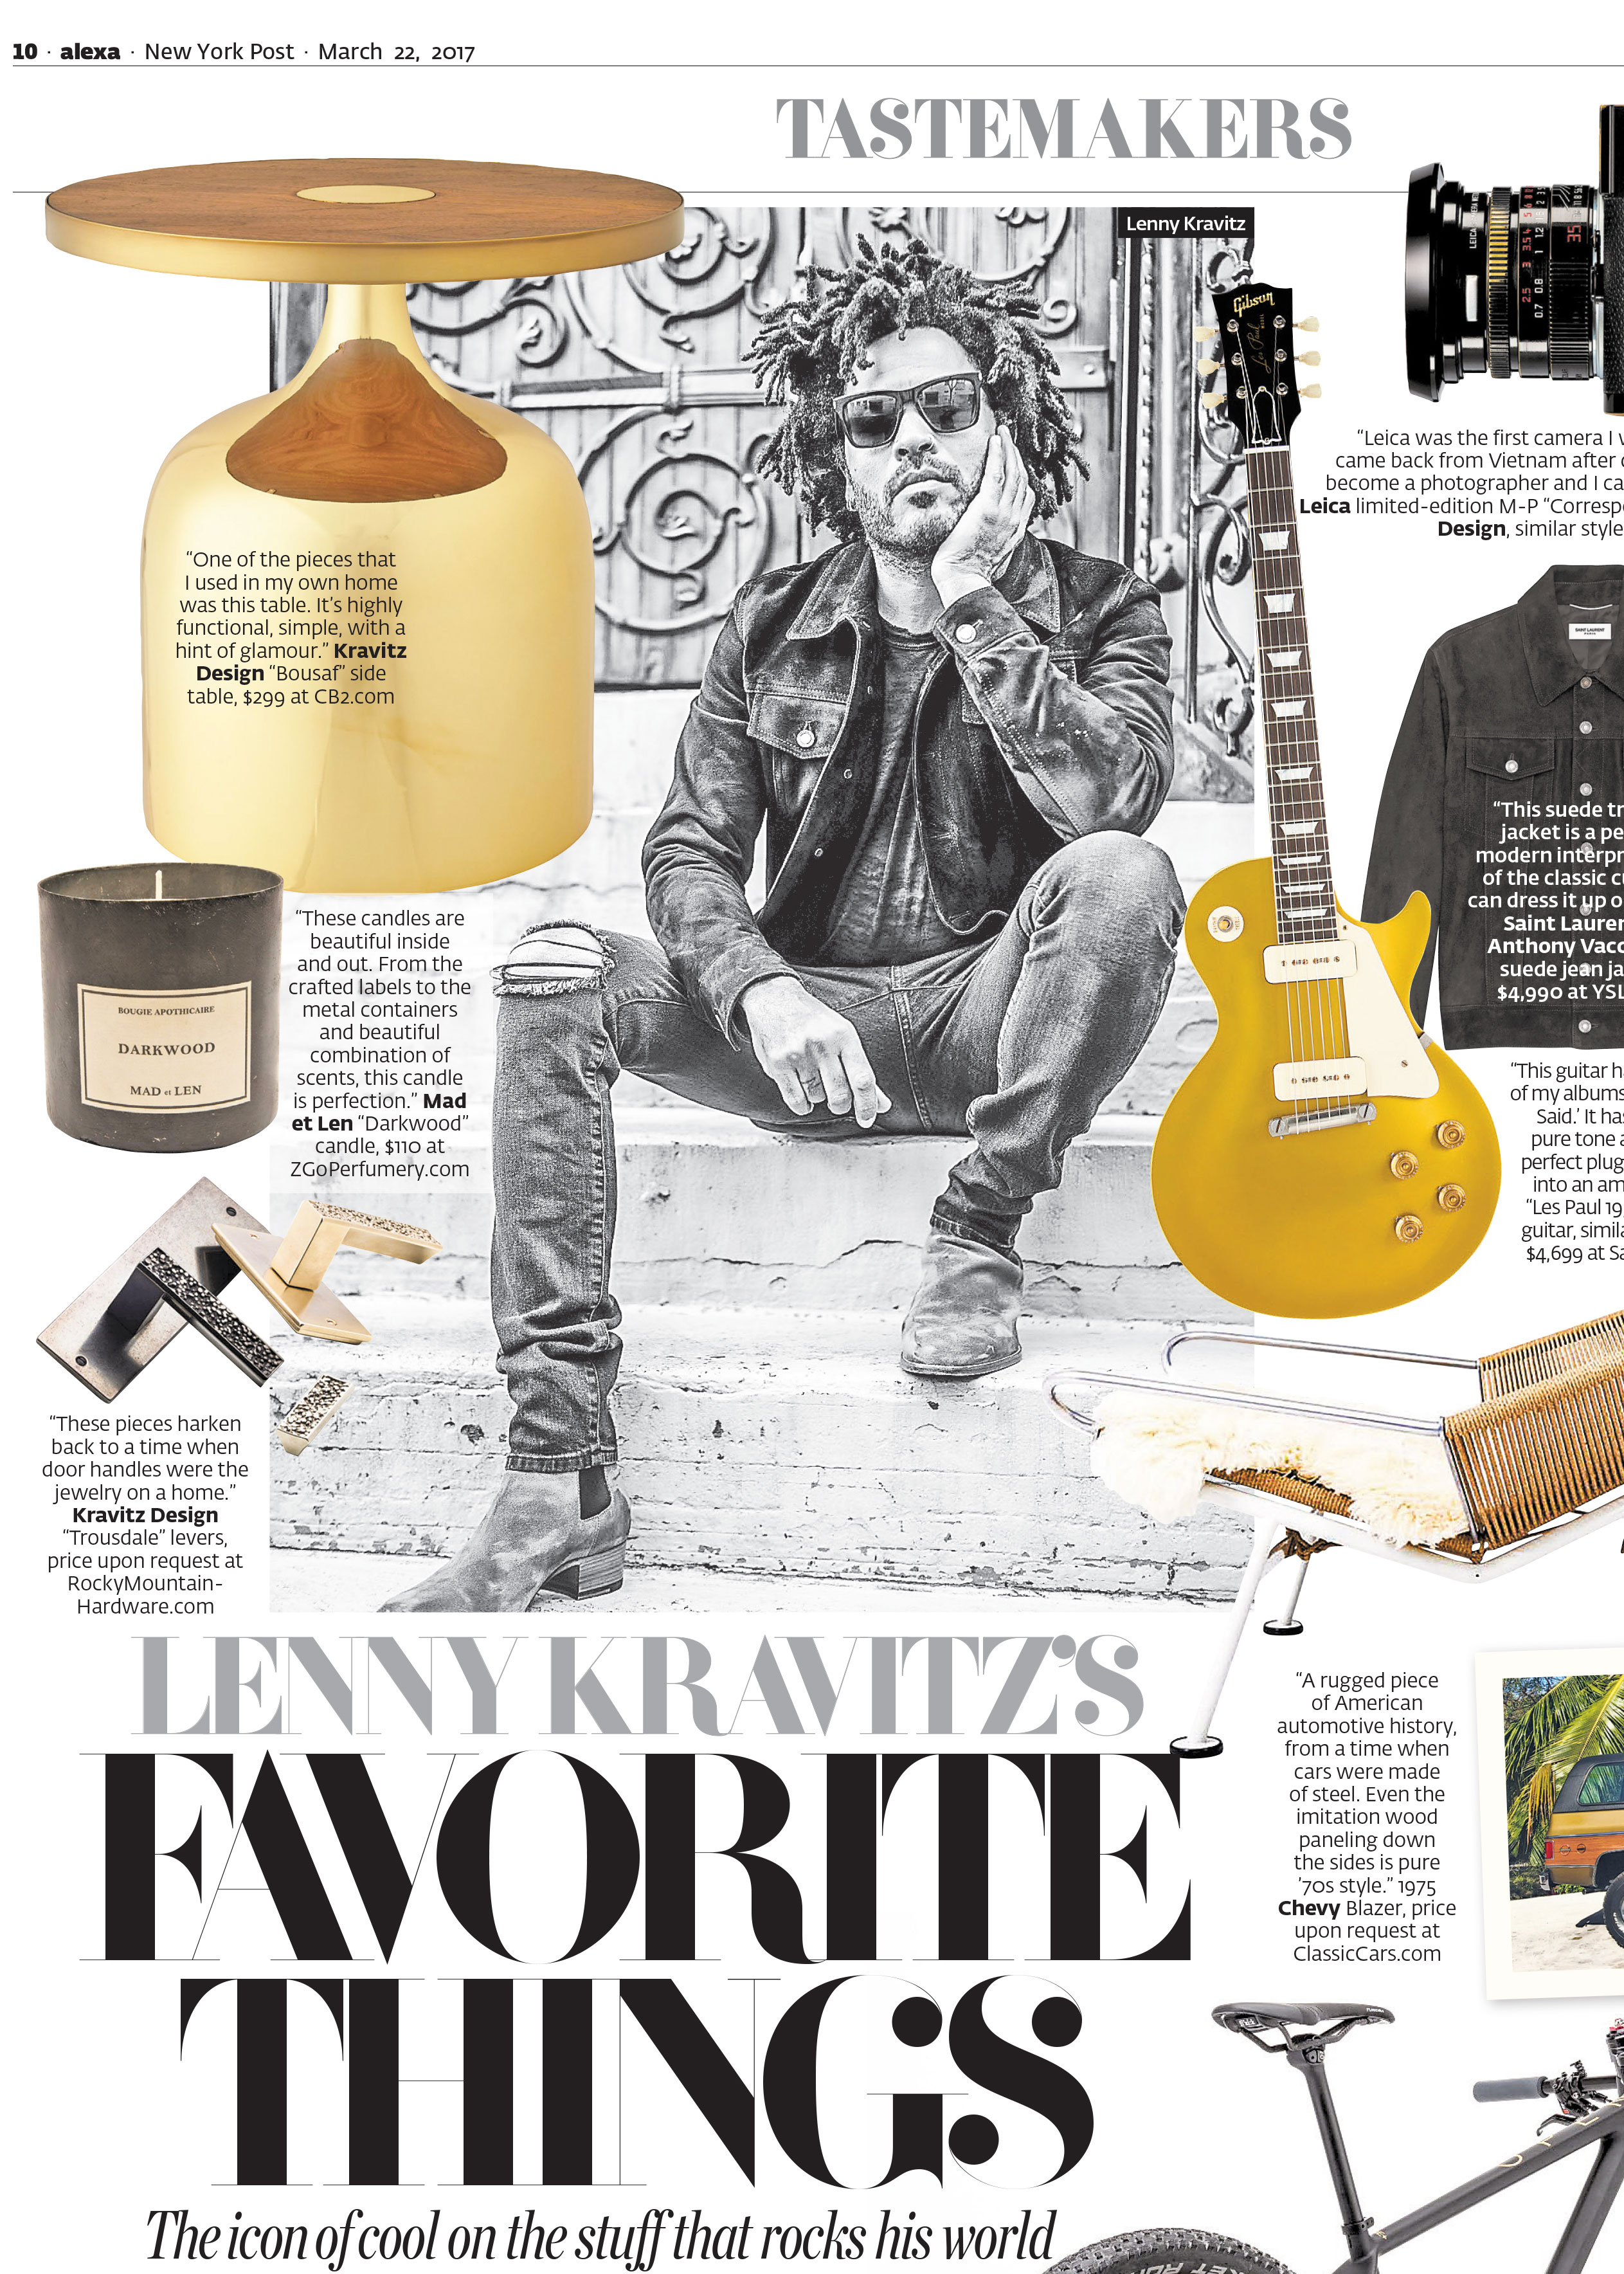 lenny-kravitz-favorite-things..jpg